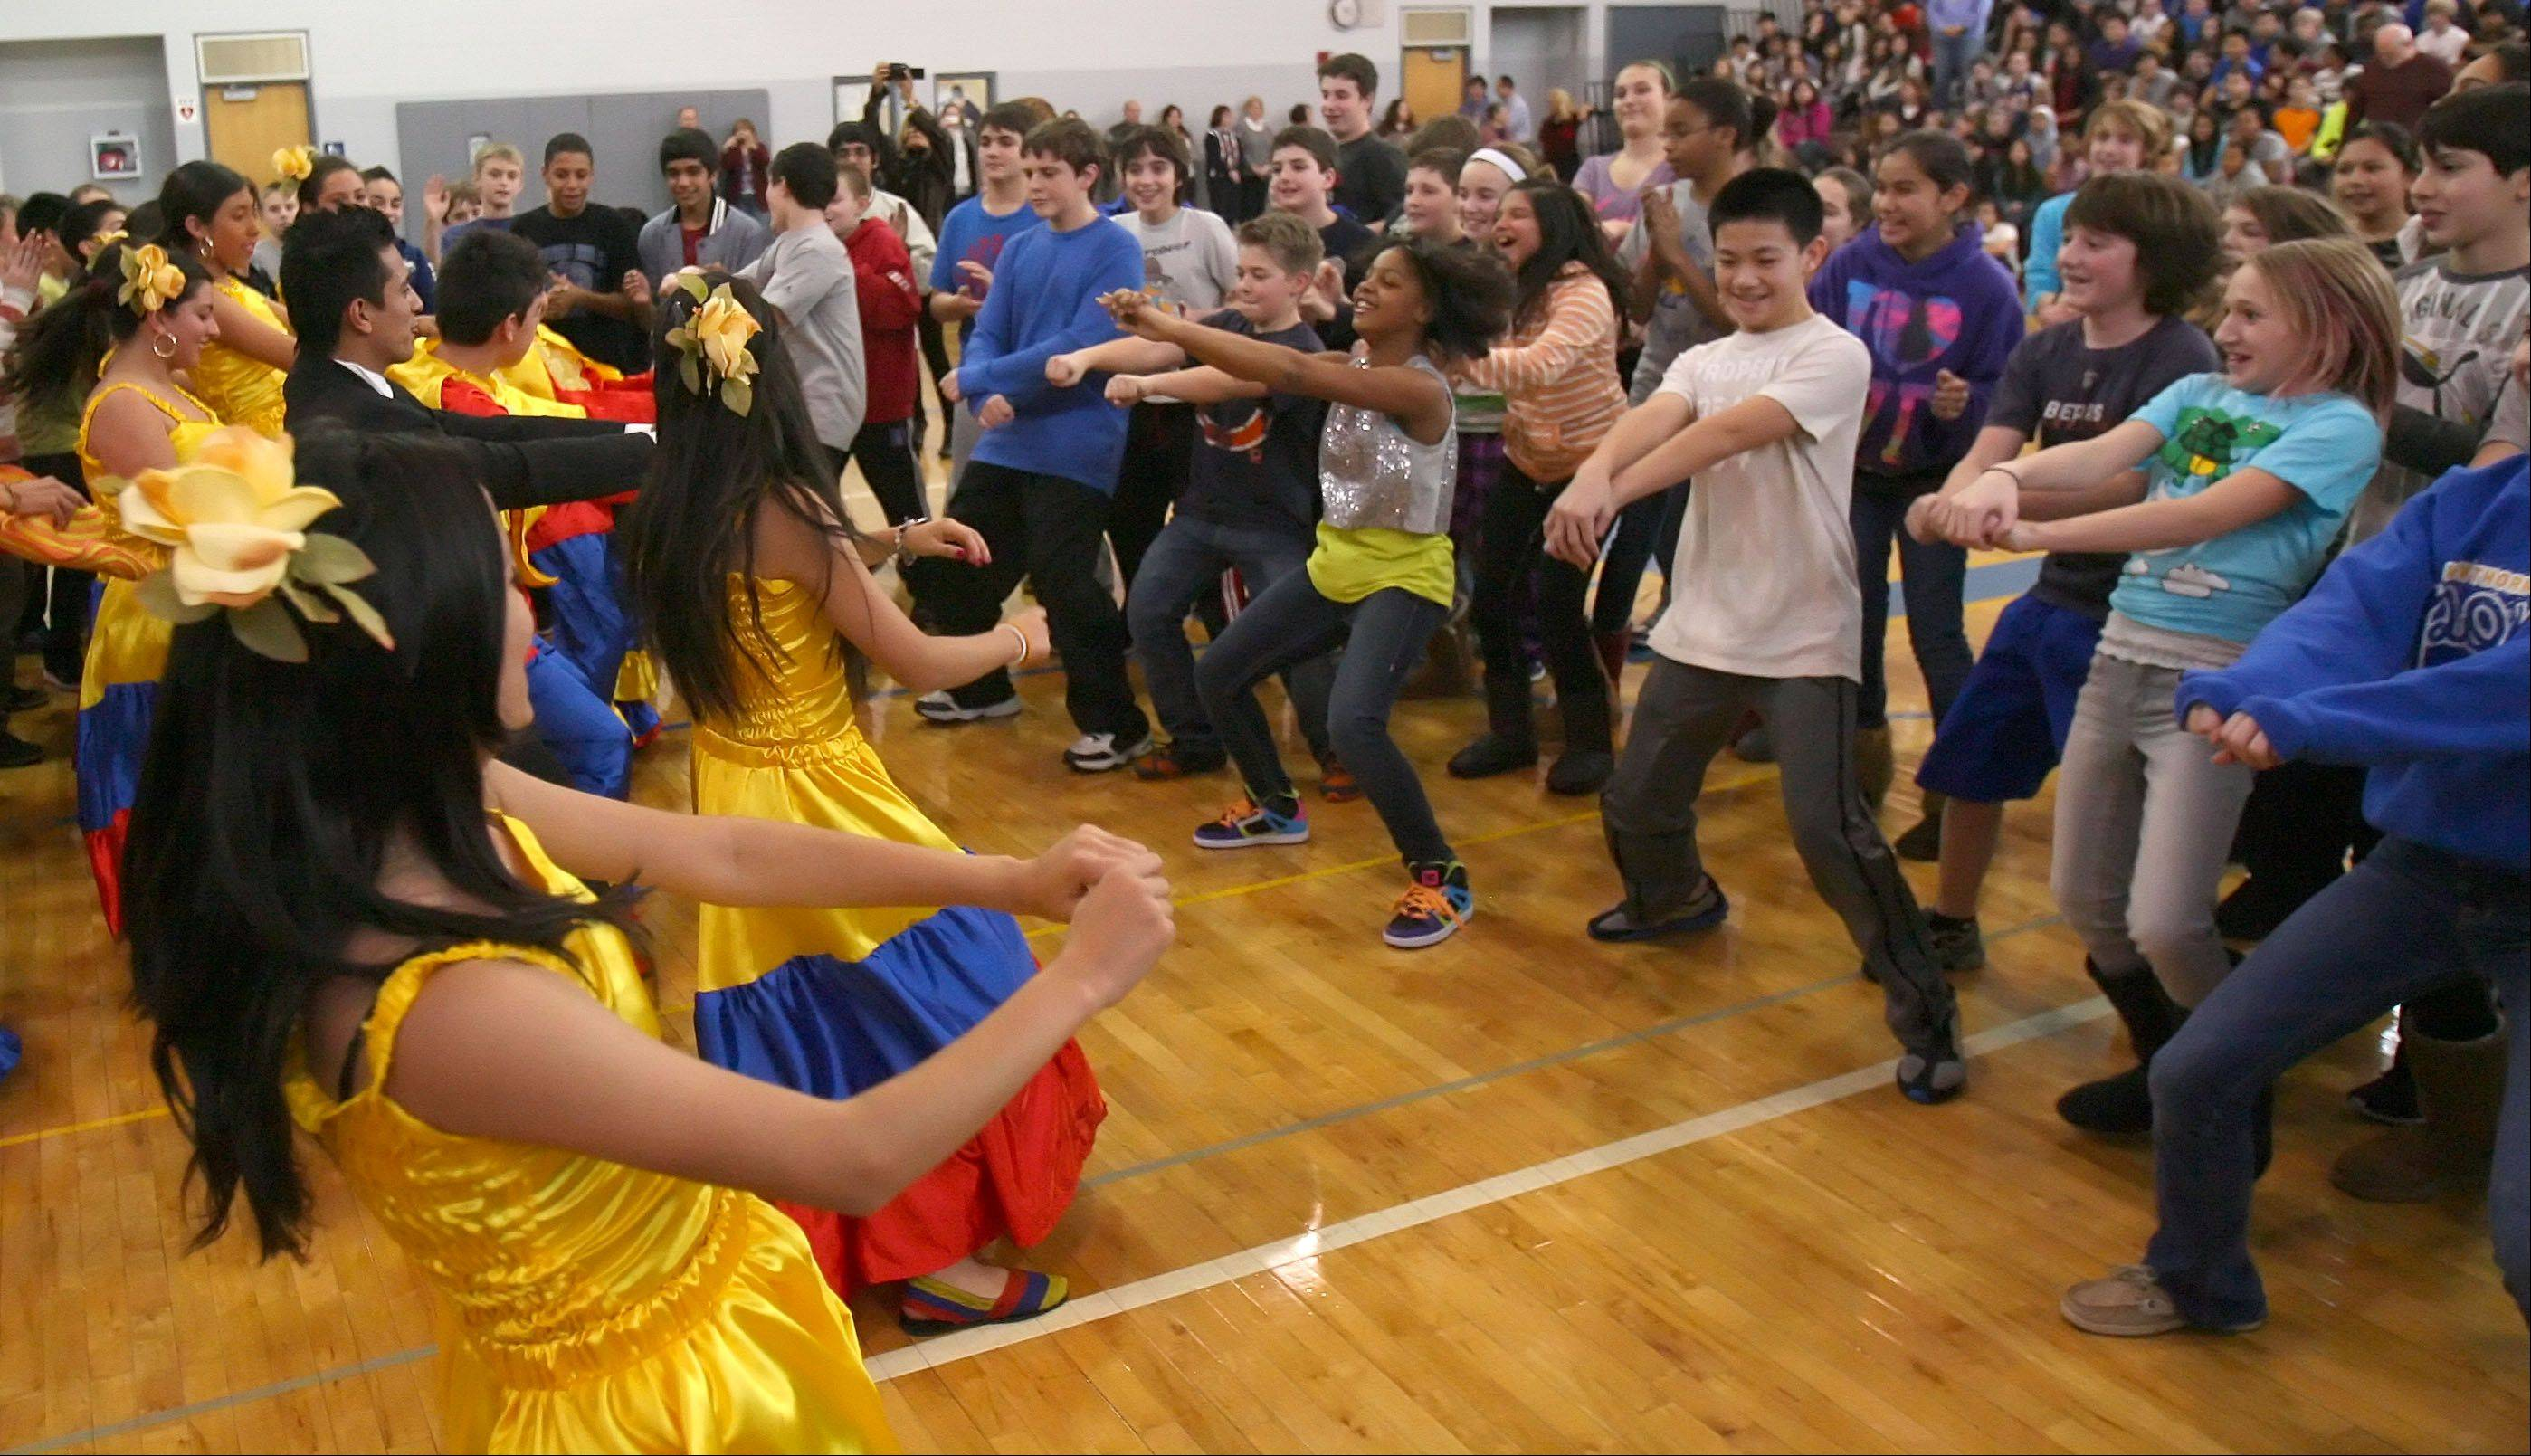 Students from the British Montessori School in Bogota, Columbia get students from Hawthorn Middle School South involved in a dance during an assembly at the school Thursday in Vernon Hills.